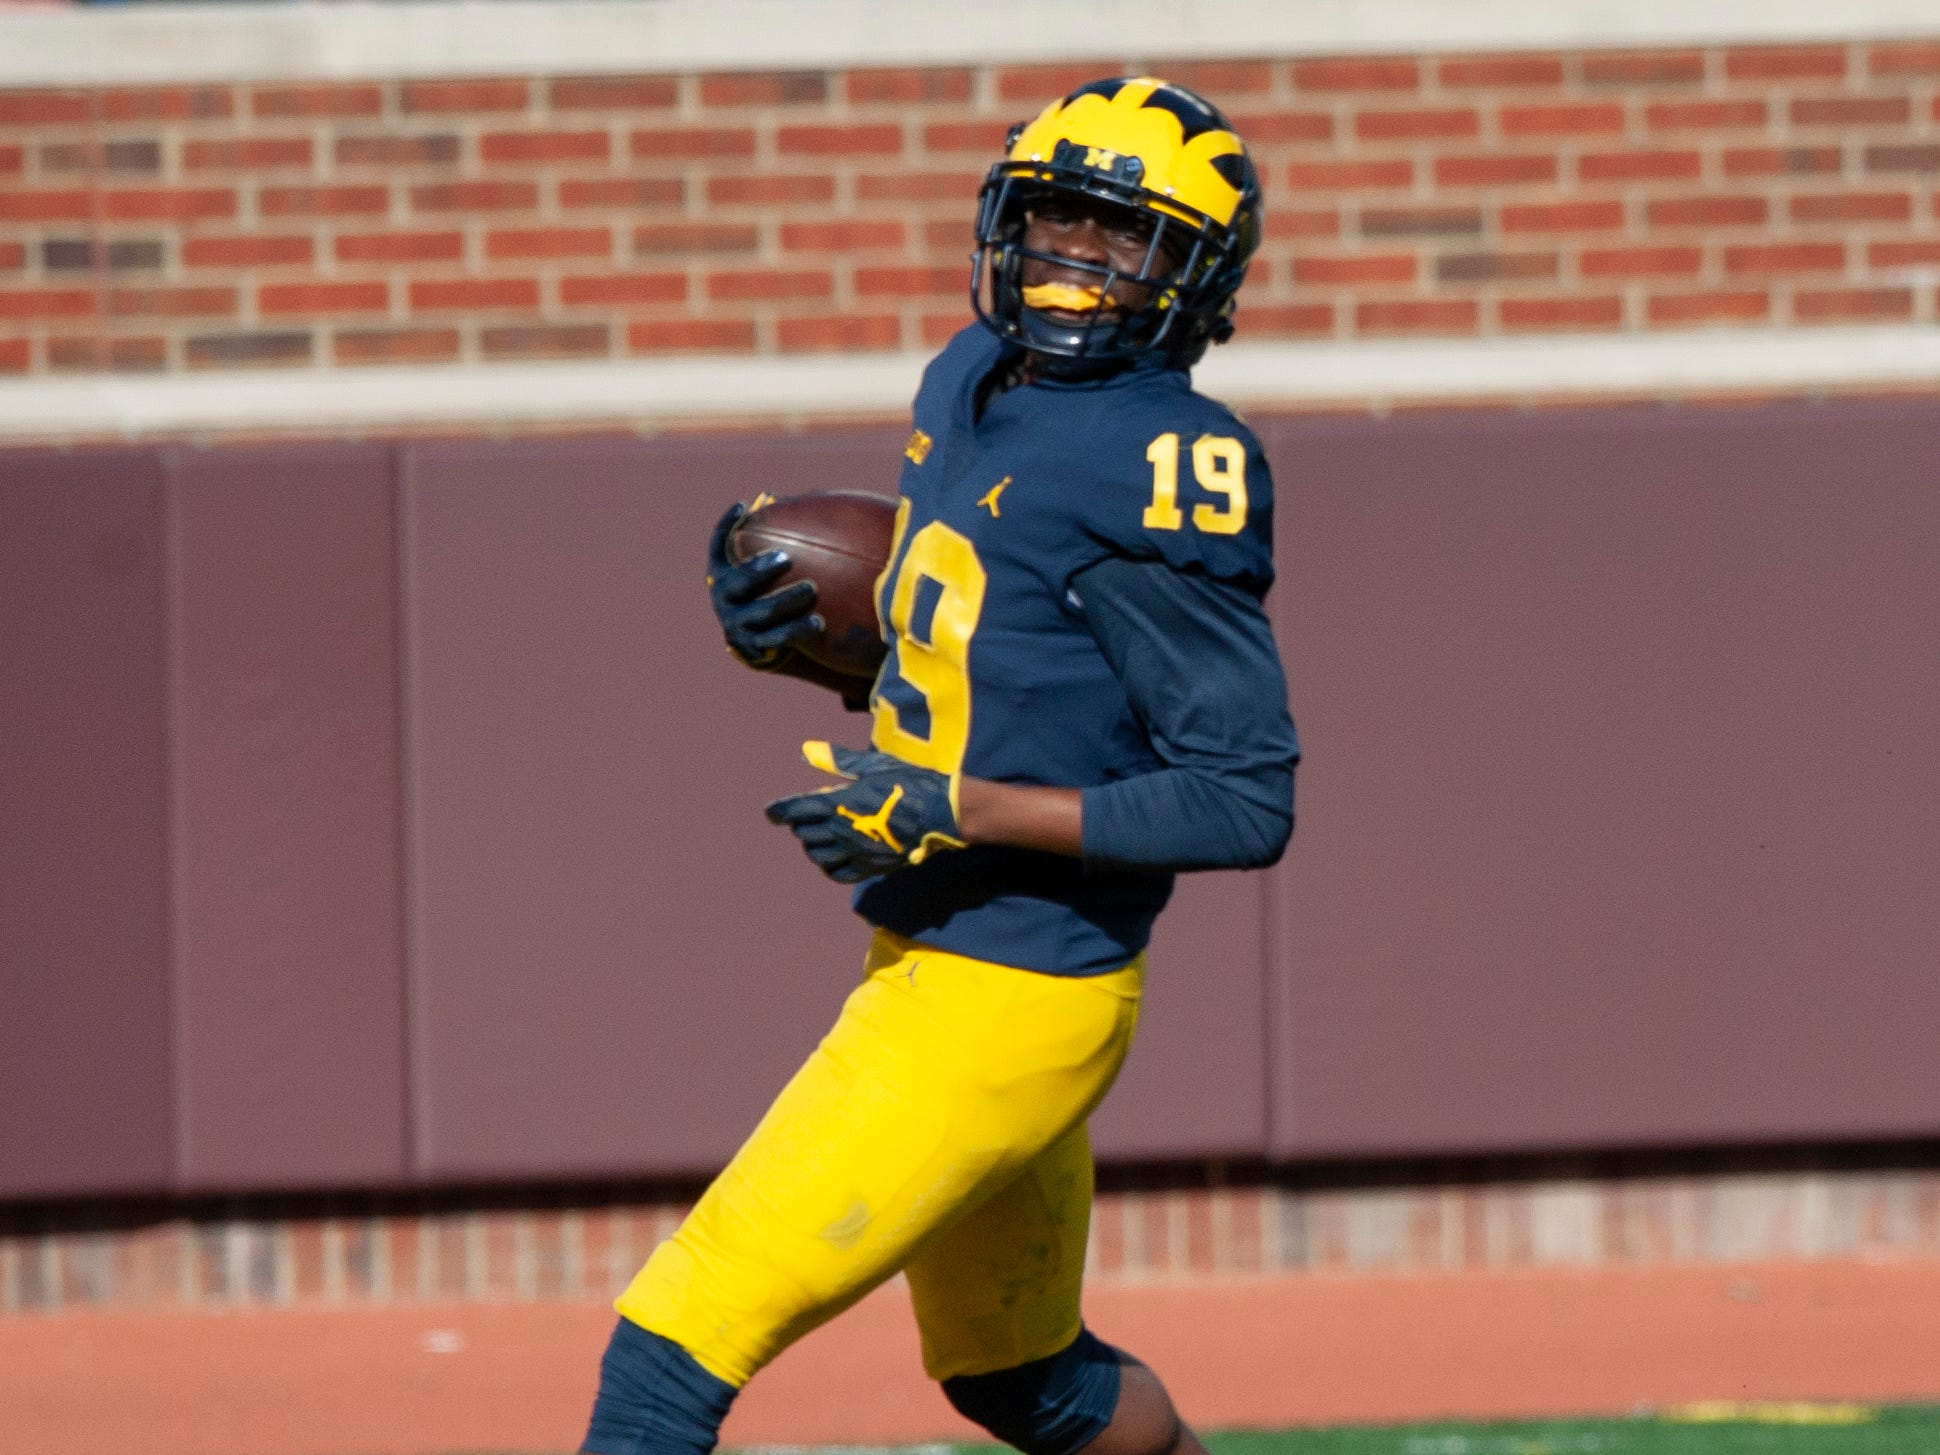 Michigan WR Mike Sainristil reaches the end zone on a pass reception for touchdown.